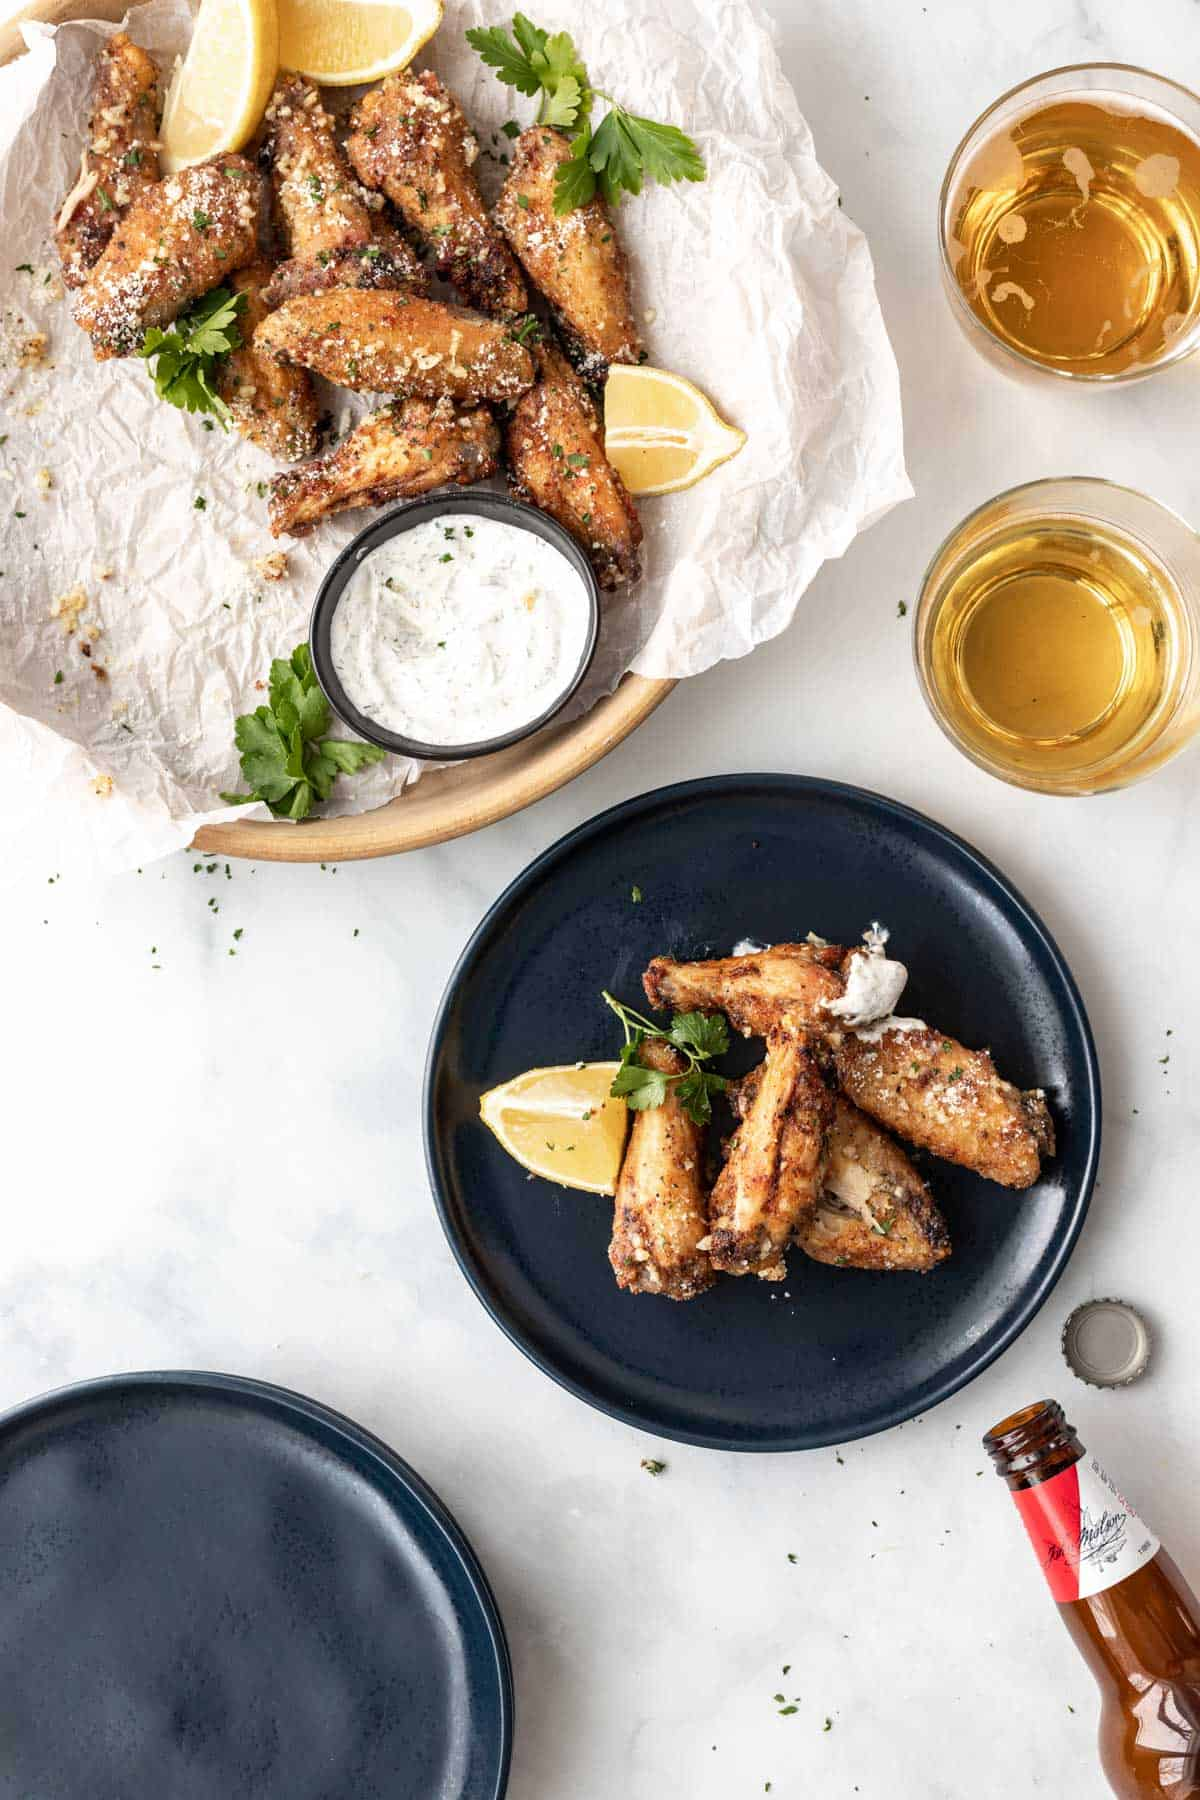 Chicken wings on a blue plate surrounded by a serving dish full of wings, 2 cups of beer, an empty beer bottle, and a bottle cap.